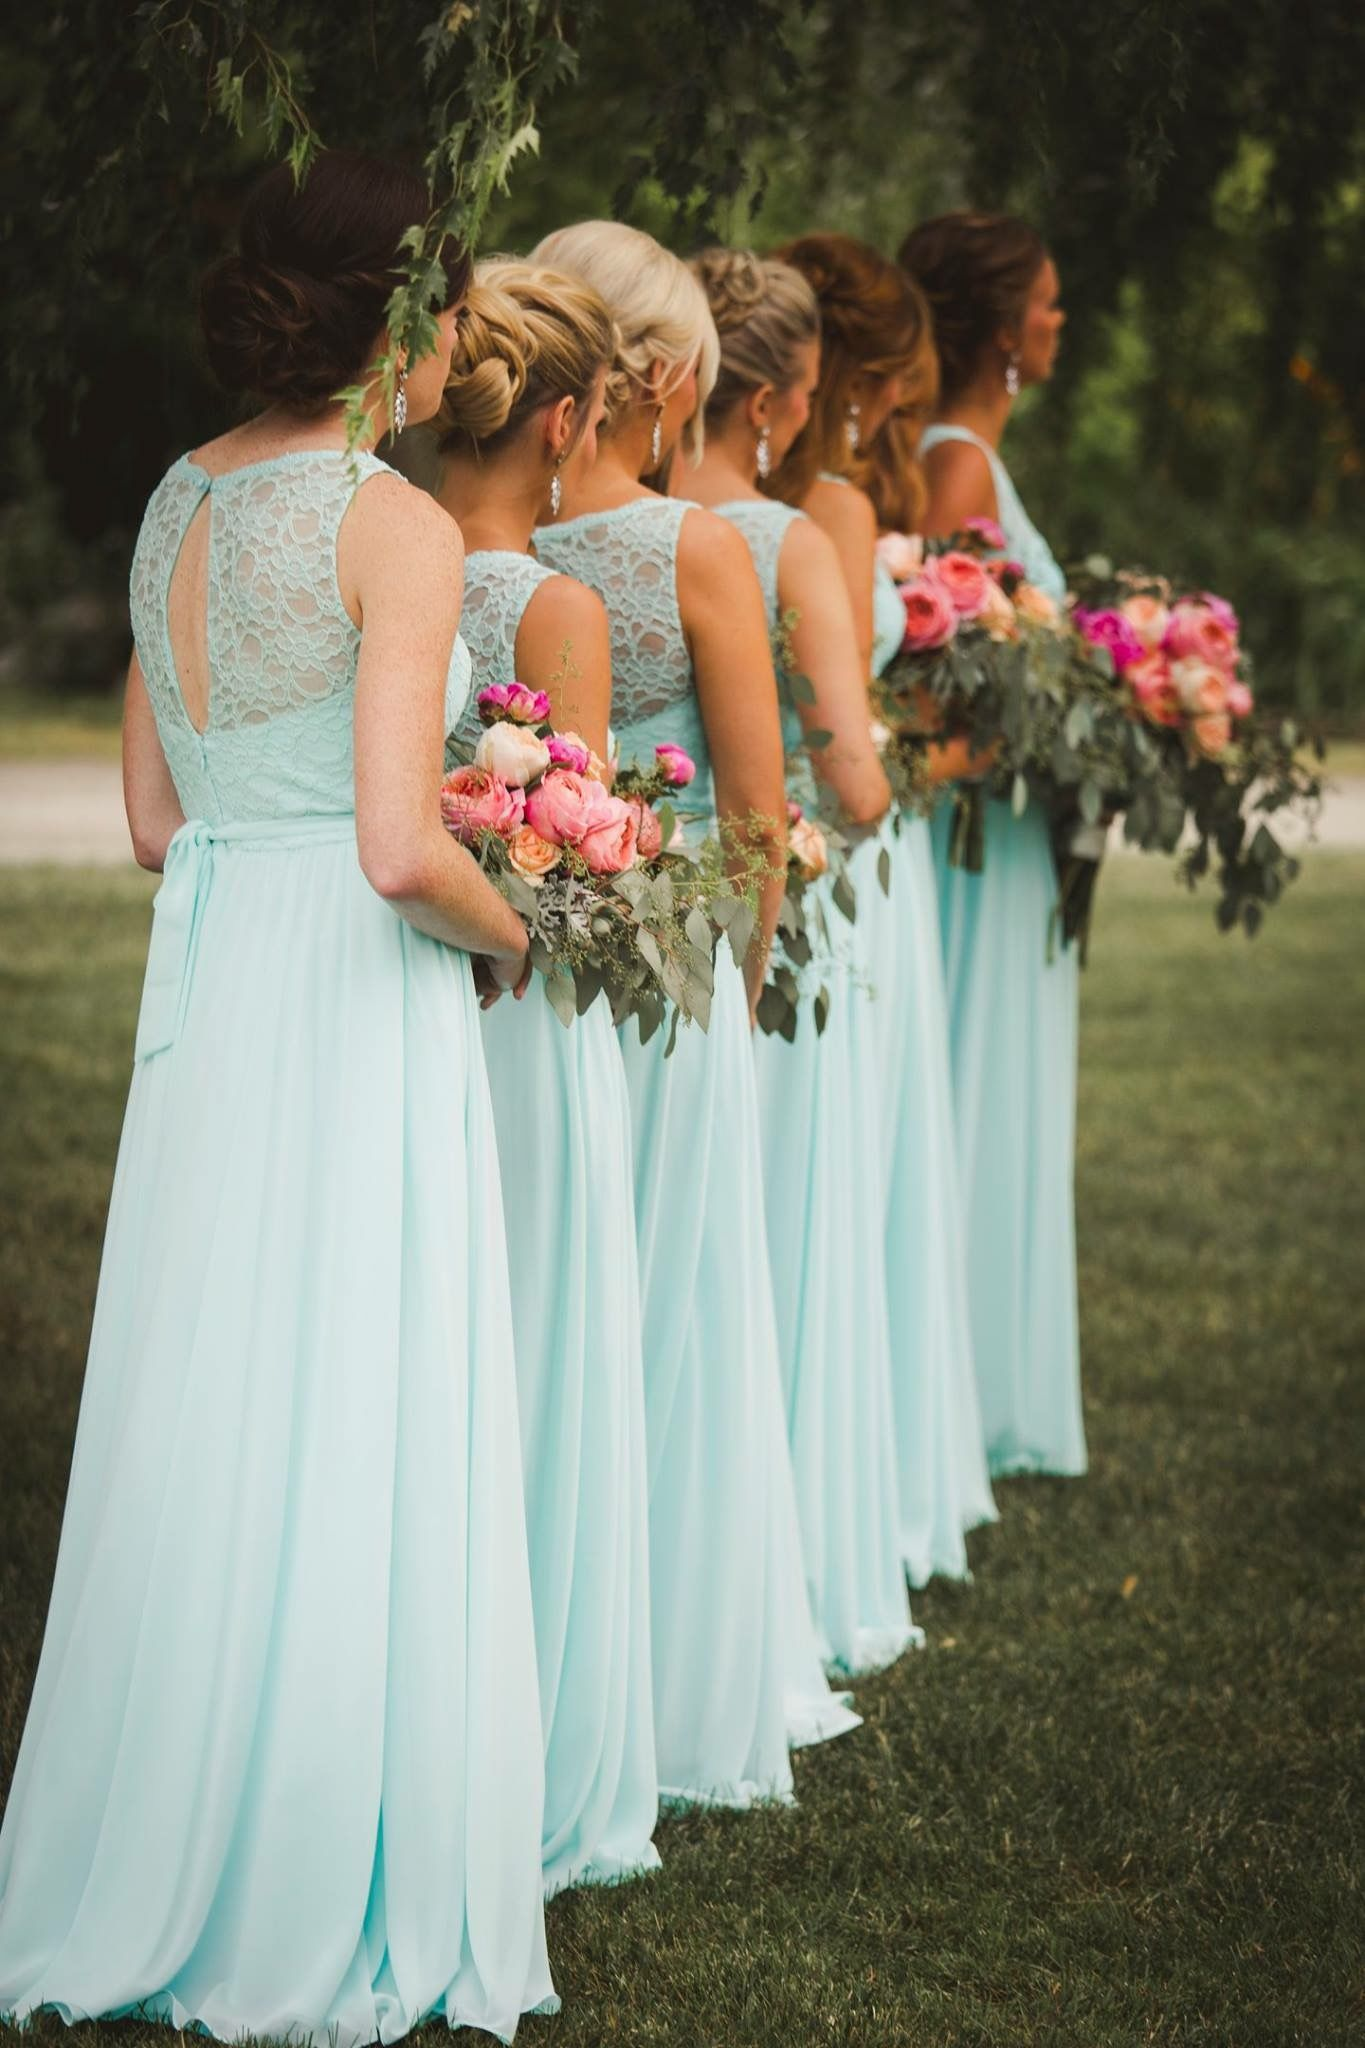 dbd16488bc Delilah | Member Board: Bride & Bridal Party Fashion | Mint ...